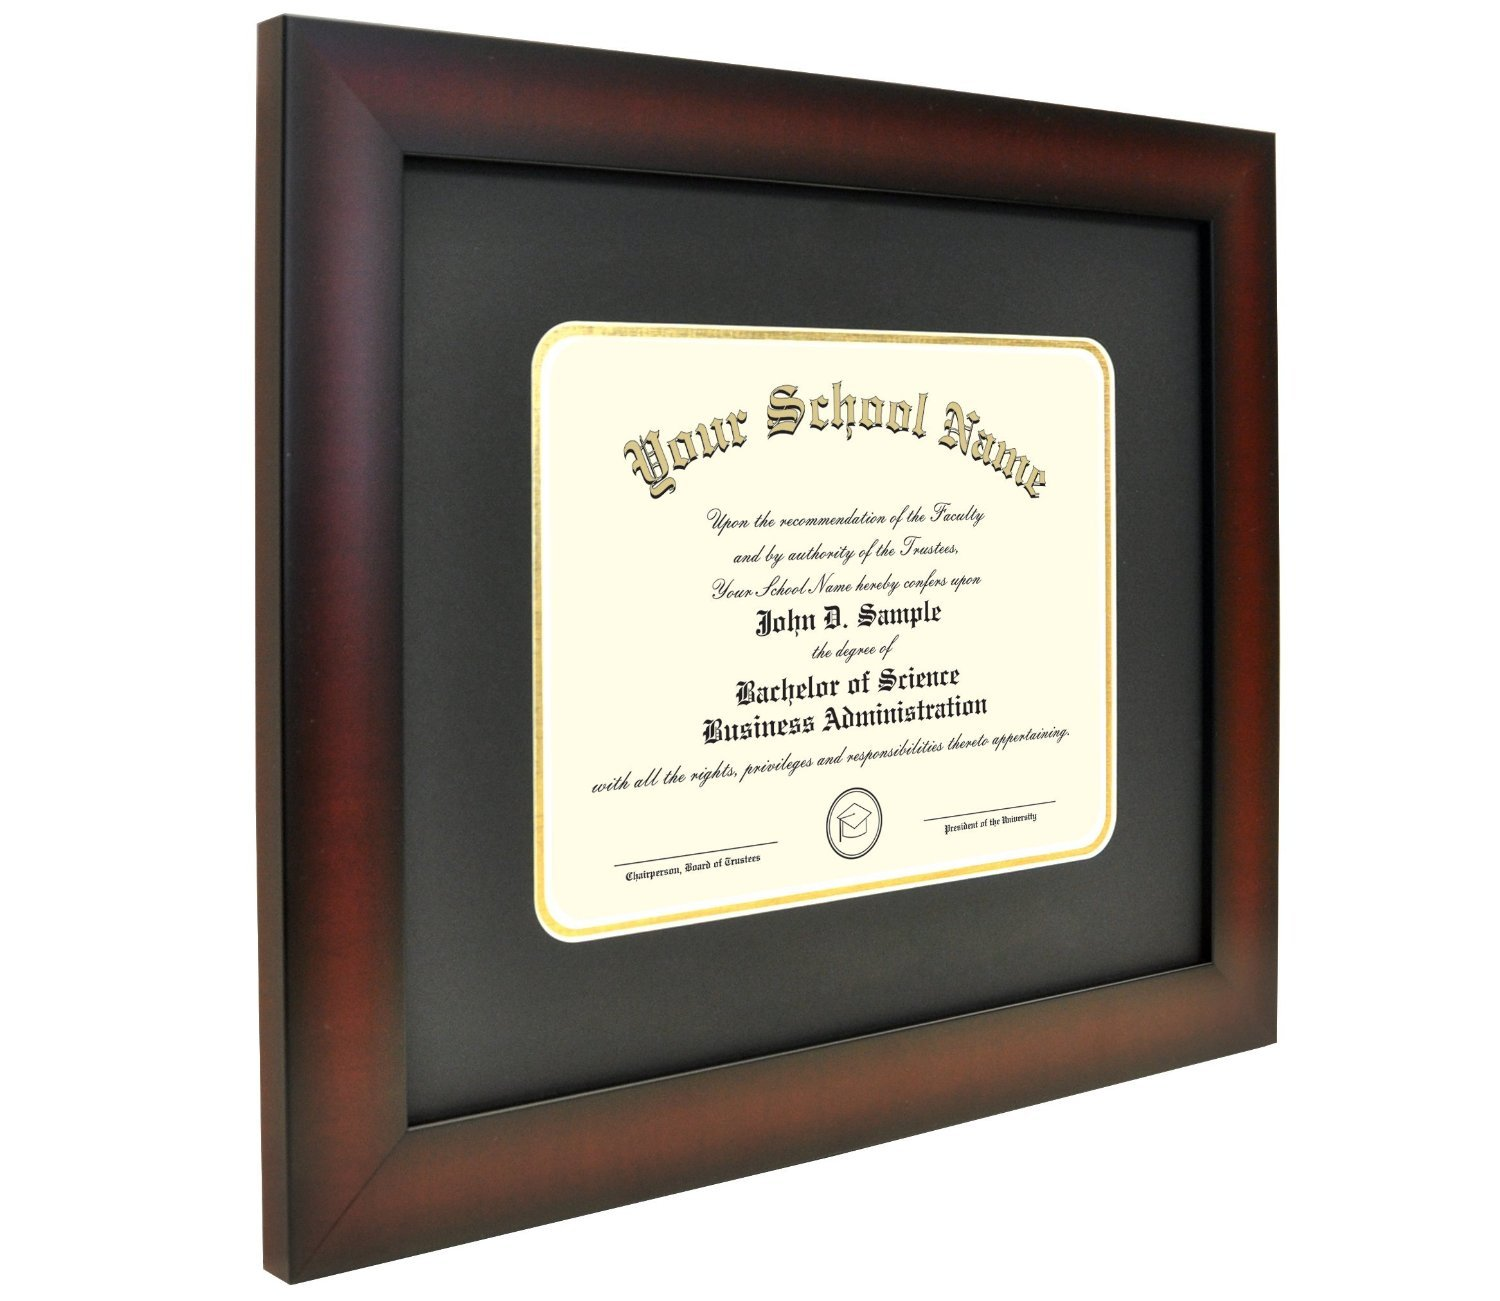 Celebration Frames Mahogany Finish Infinity Diploma Frame (fits 8.5 x 11 Document) with Black and Gold Mats